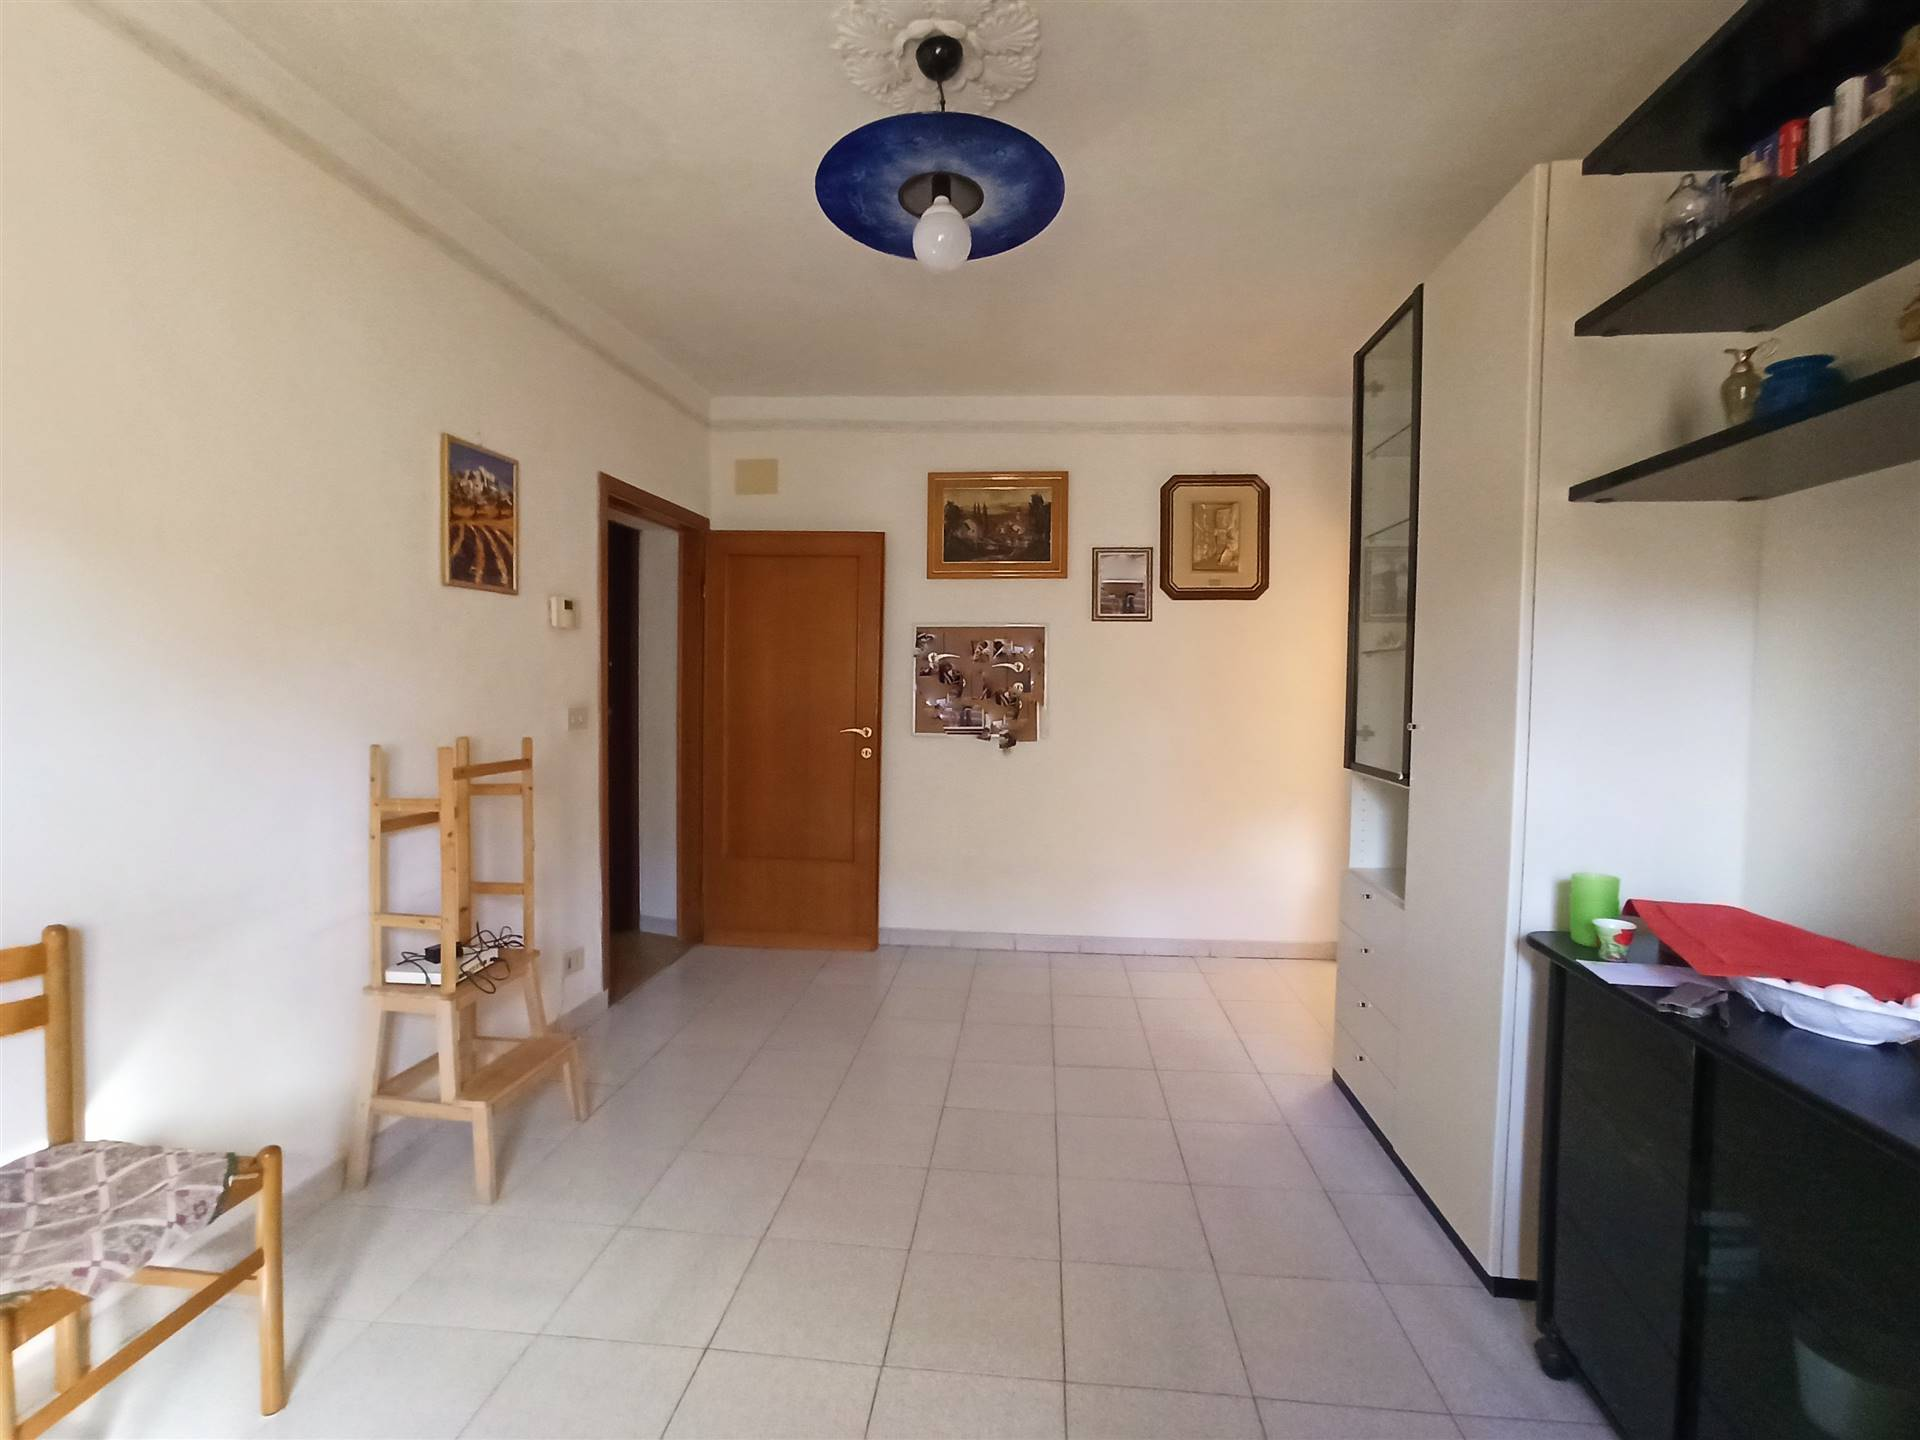 CASTELLO, SIGNA, Apartment for sale of 77 Sq. mt., Good condition, Heating Individual heating system, Energetic class: G, placed at 2° on 2, composed